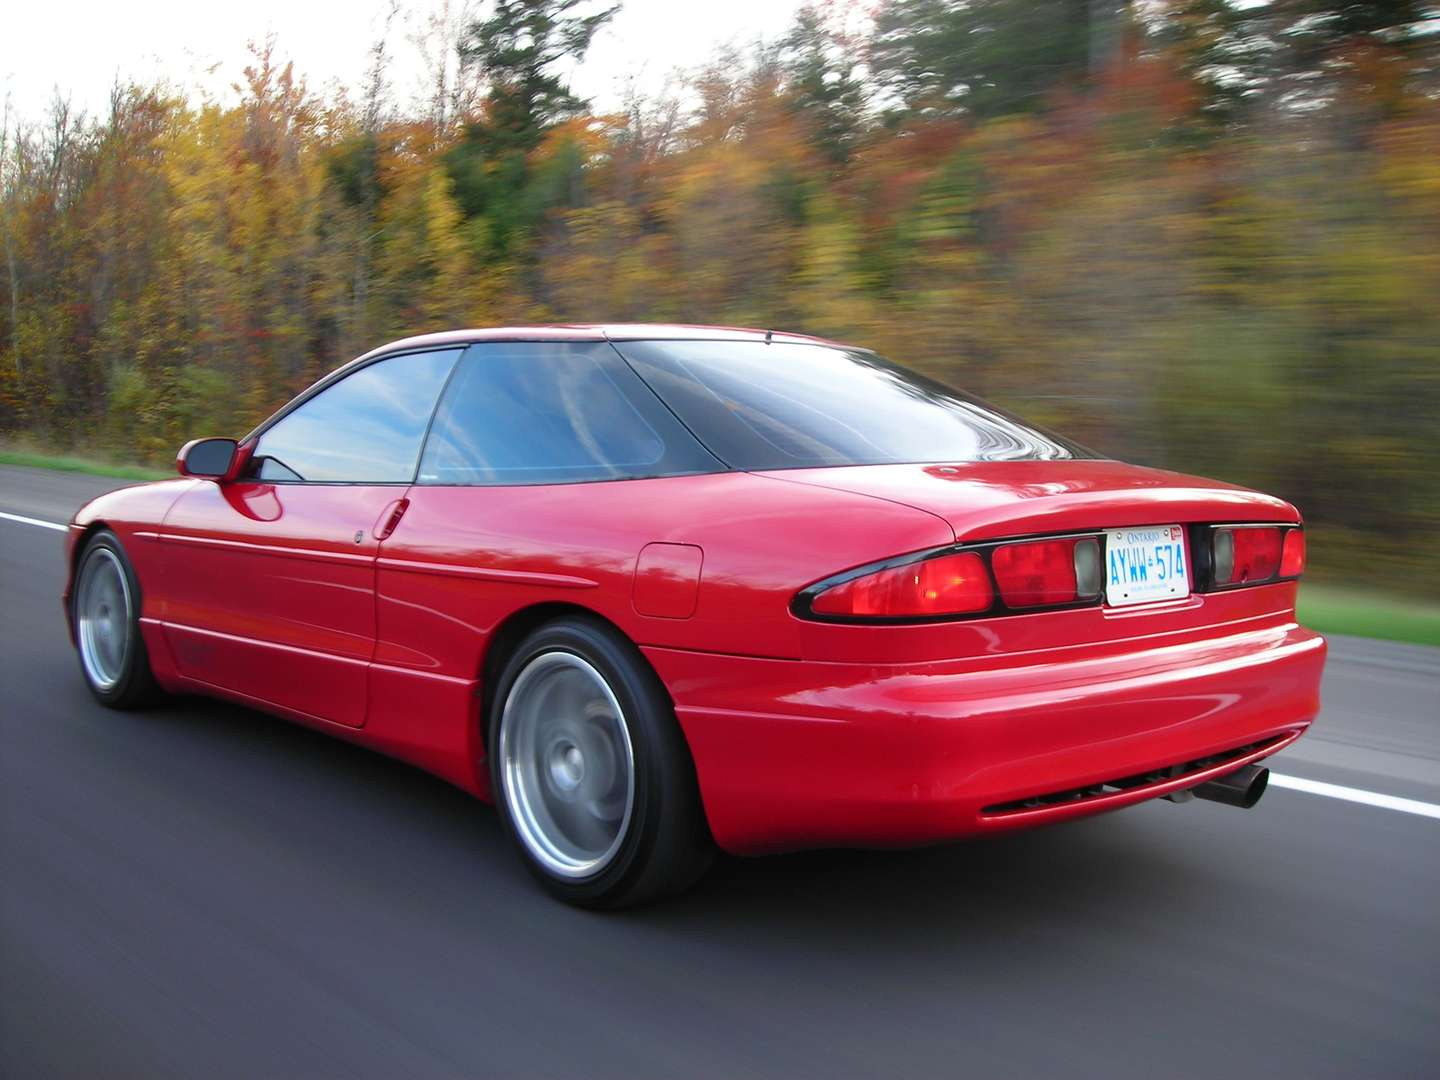 Ford Probe GT #9326516